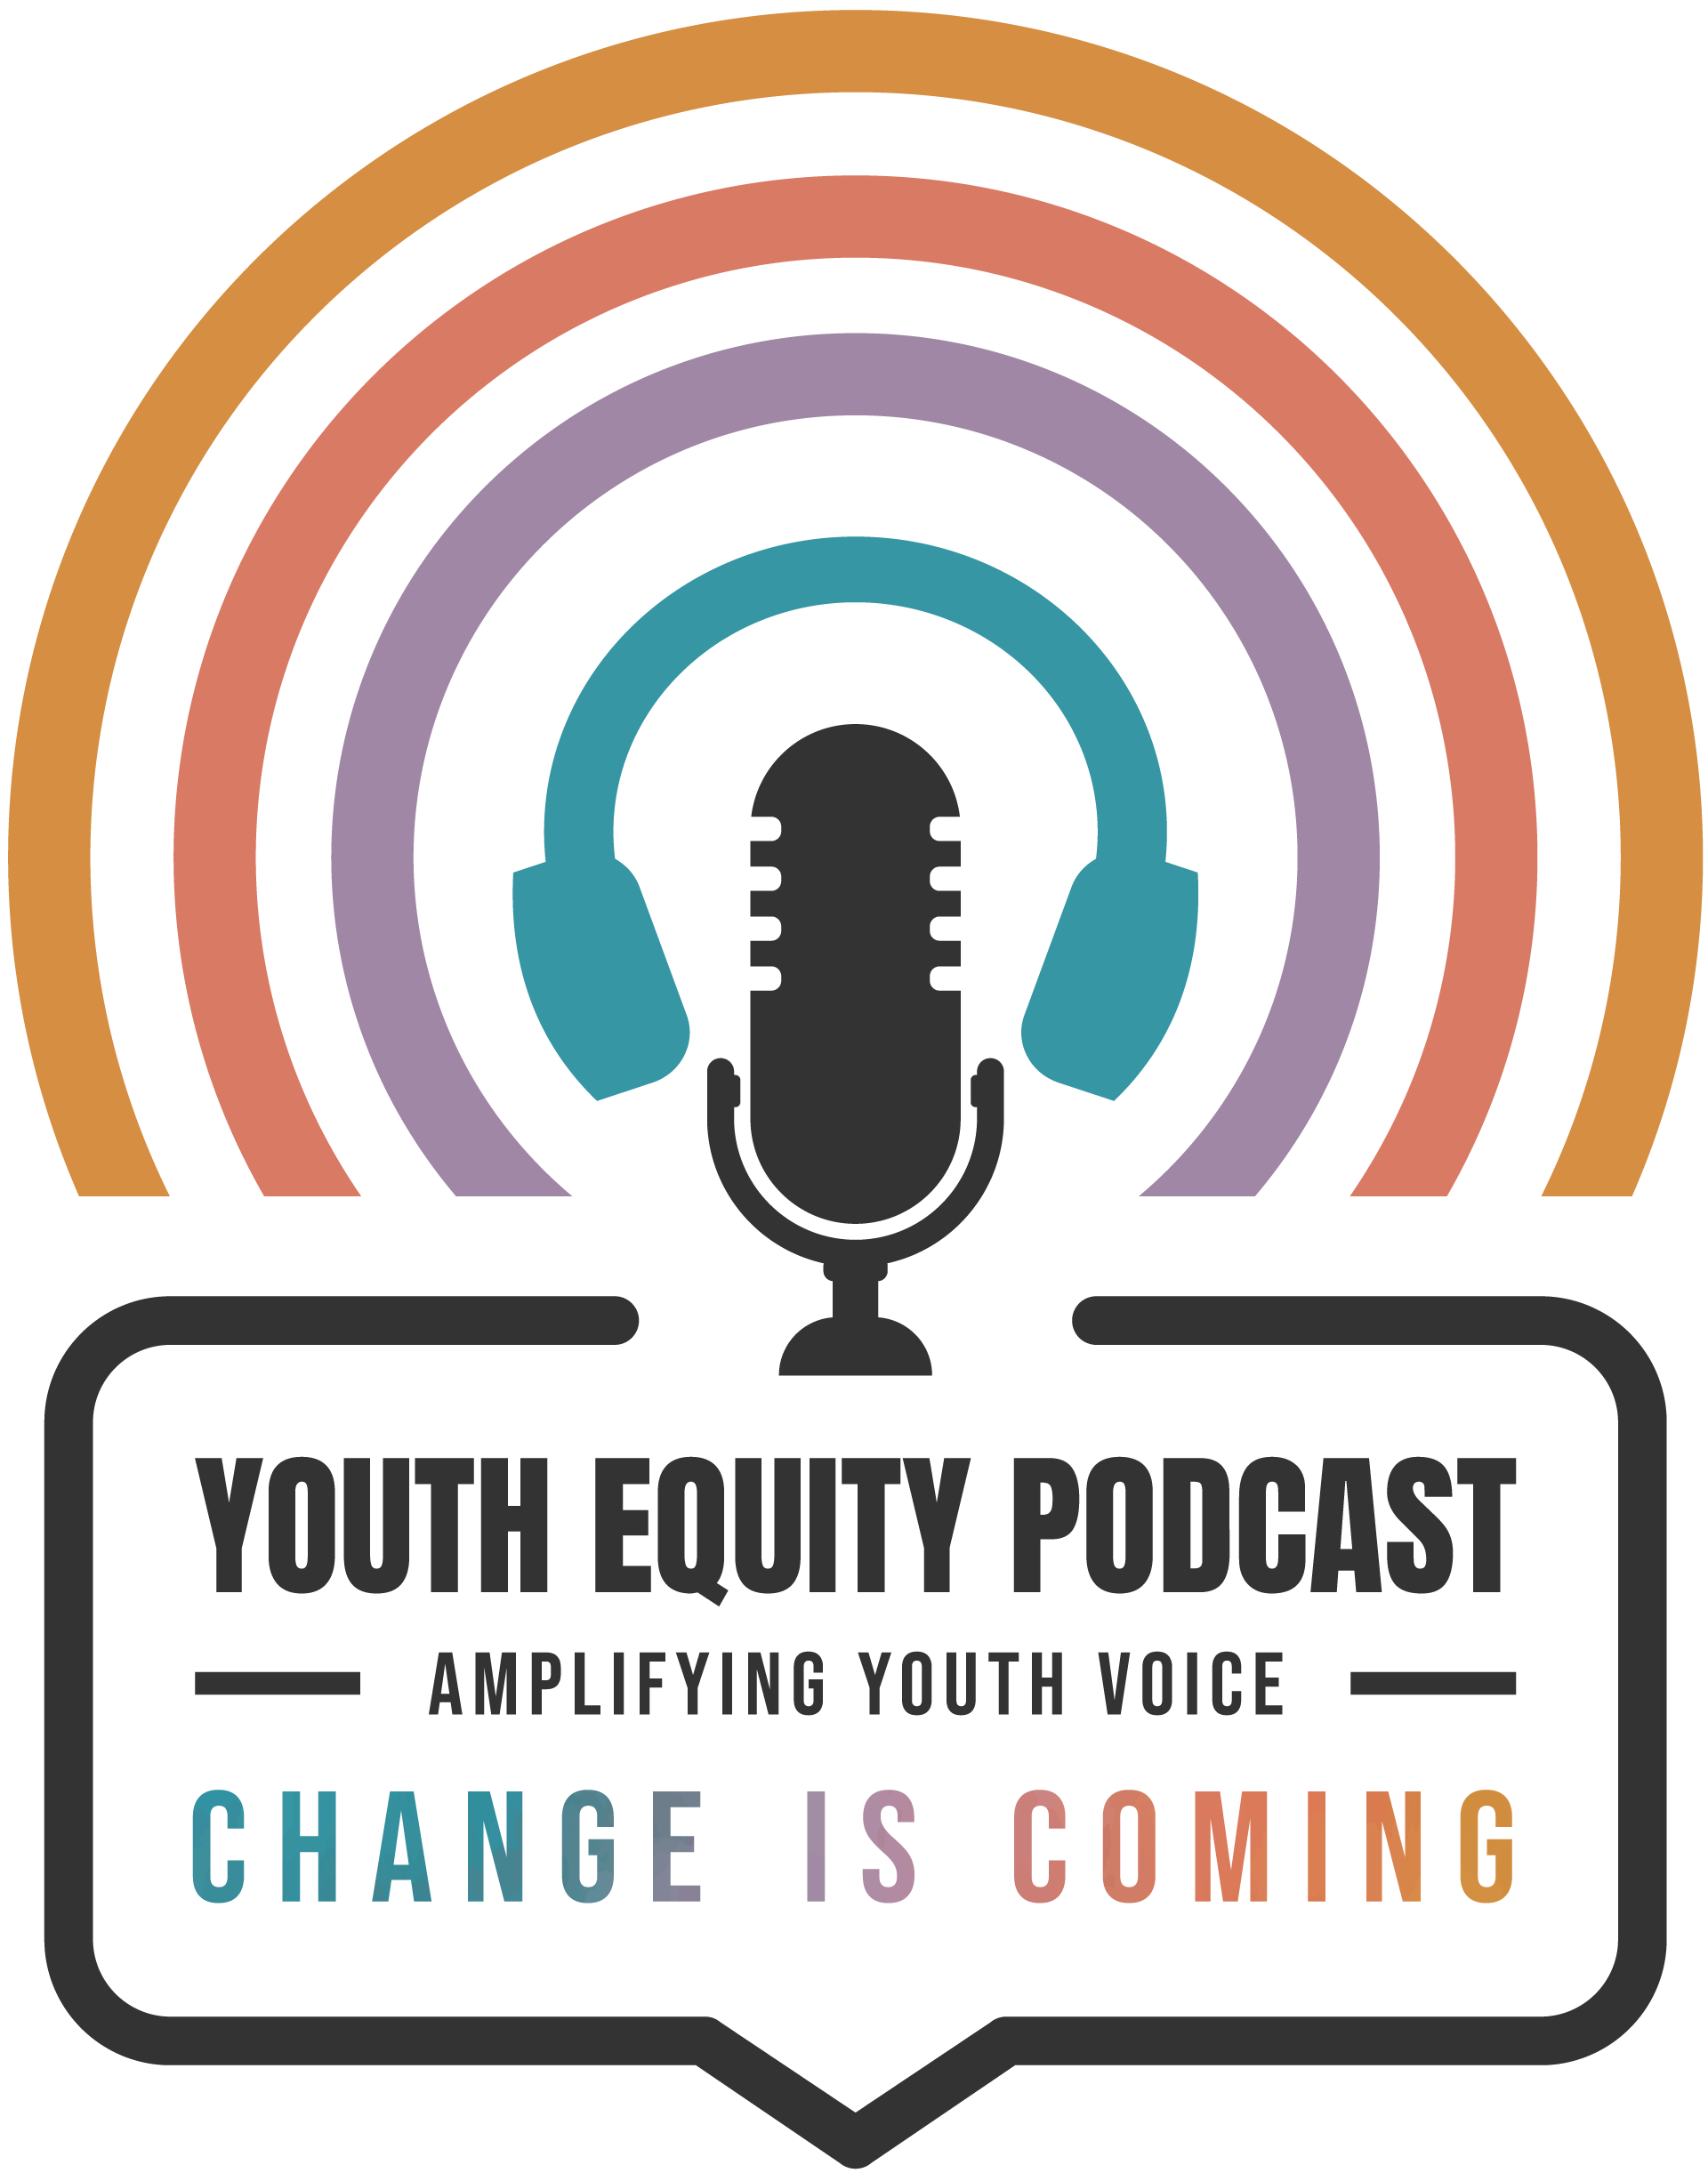 Youth equity podcast logo